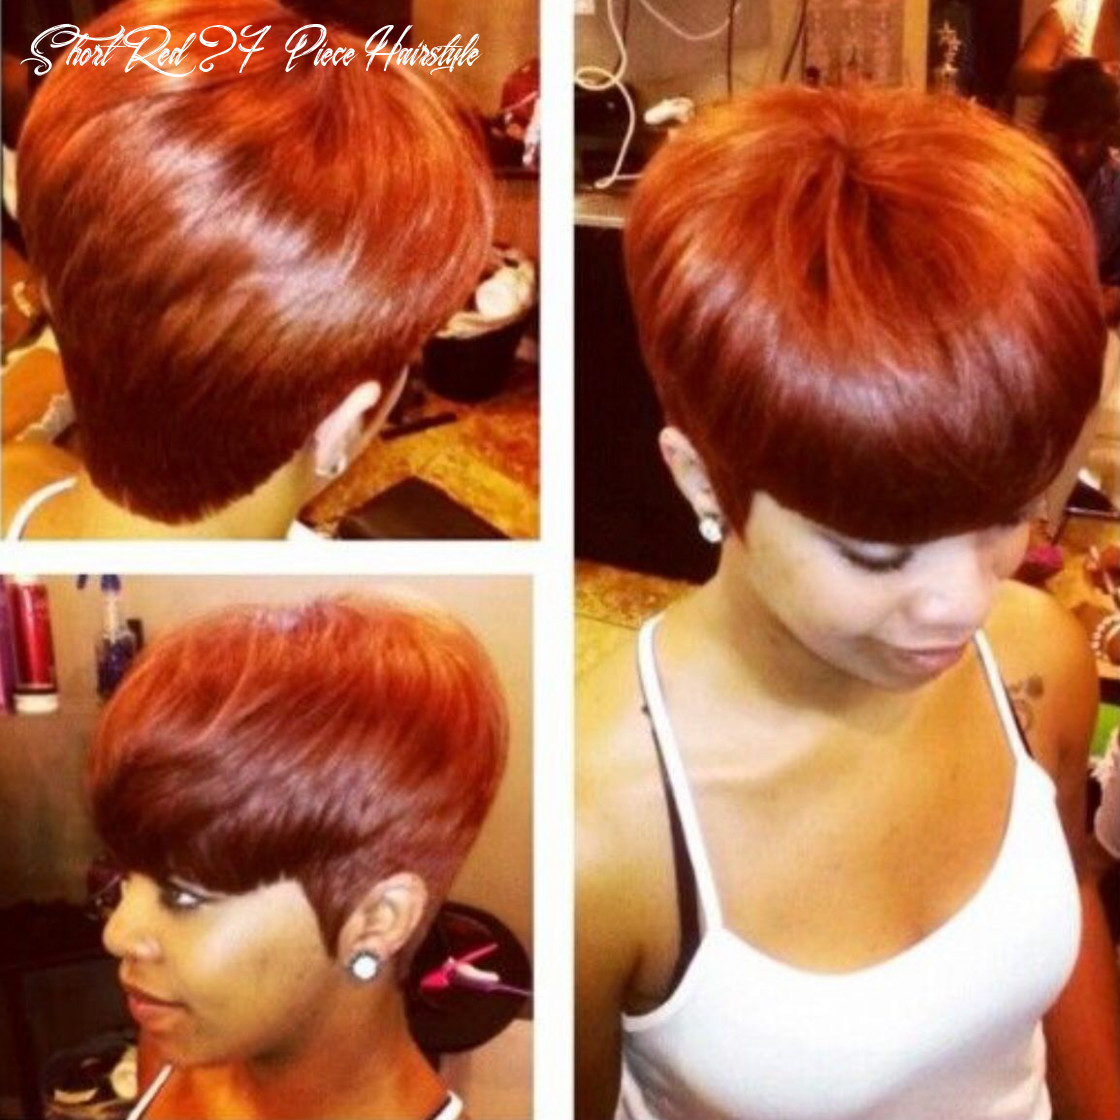 Pin on hairstyle ideas short red 27 piece hairstyle